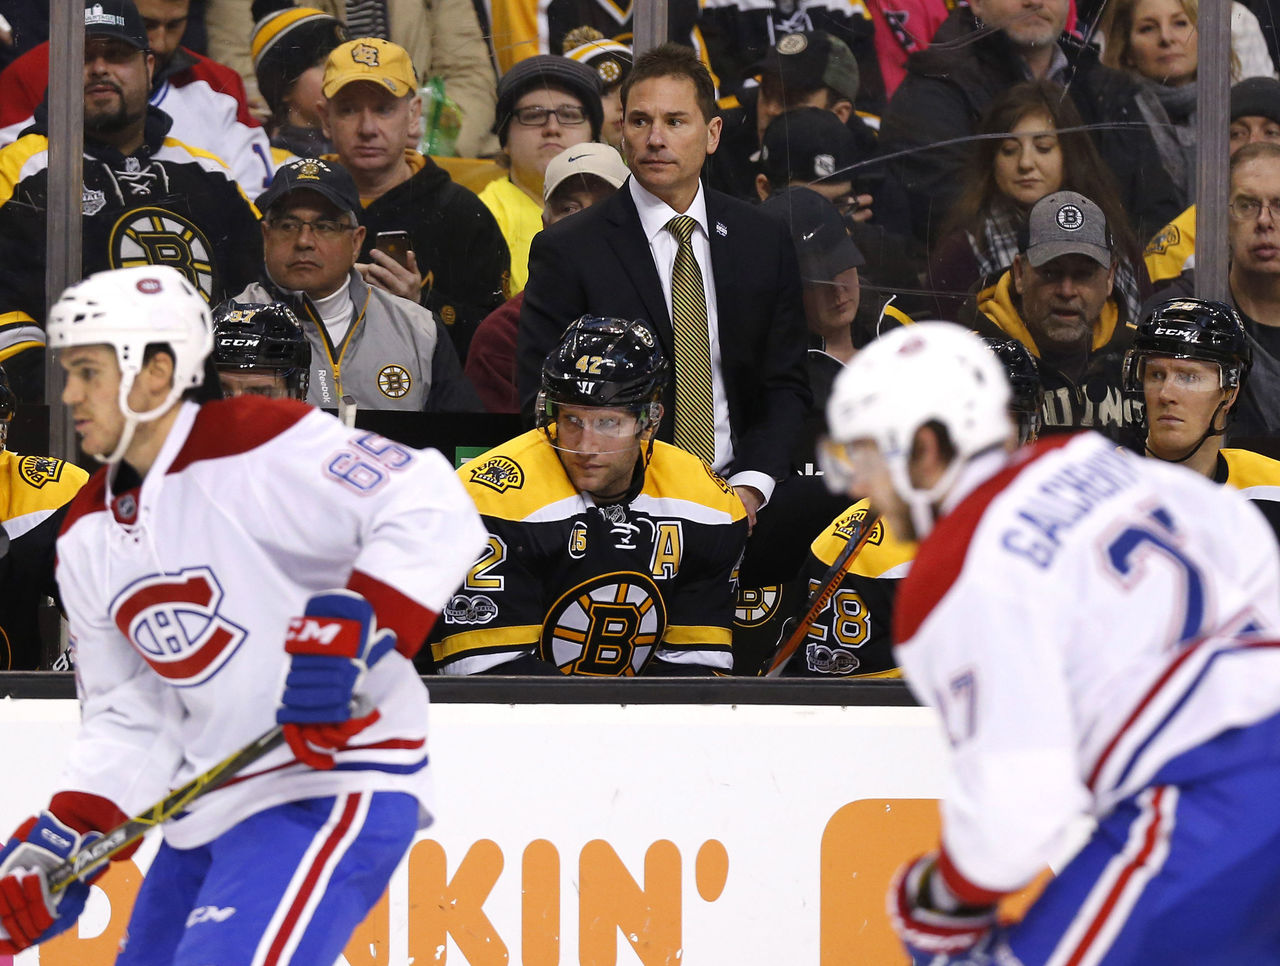 Cropped 2017 02 13t042625z 1412502180 nocid rtrmadp 3 nhl montreal canadiens at boston bruins